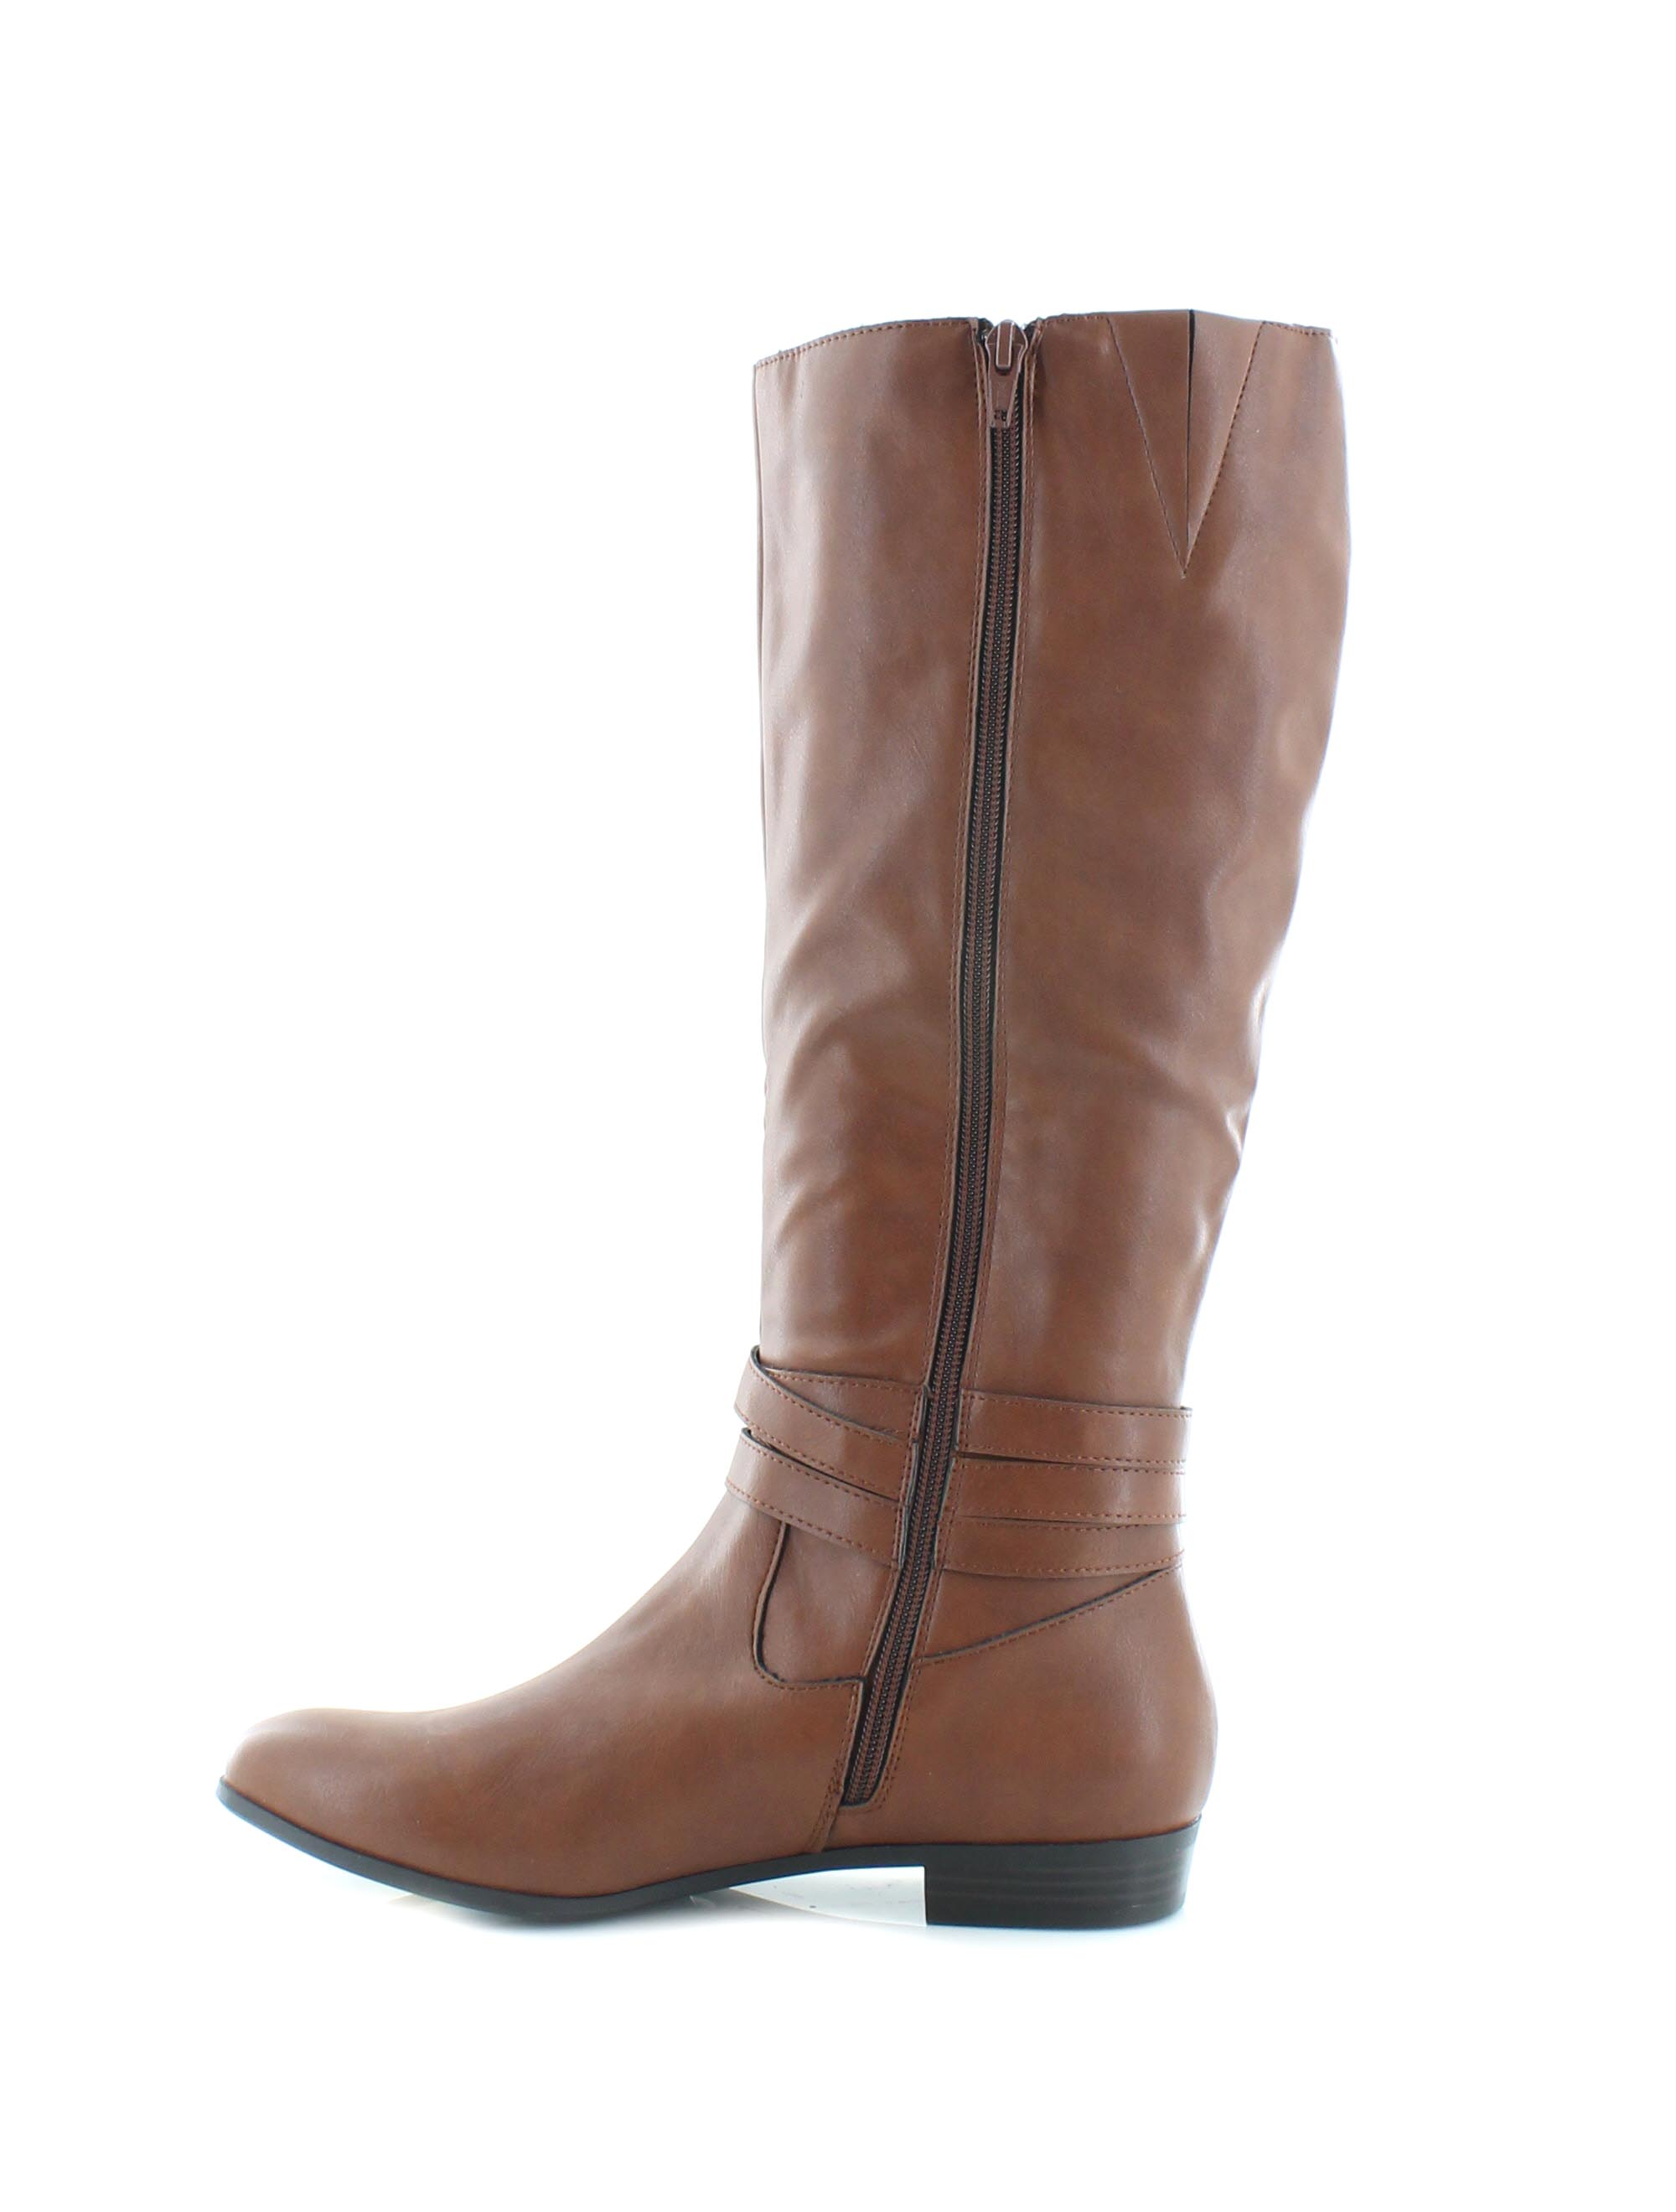 817a975bc34 Style Style Style   Co. FRIDAA Women s Boots Barrel 435622 - boxing ...